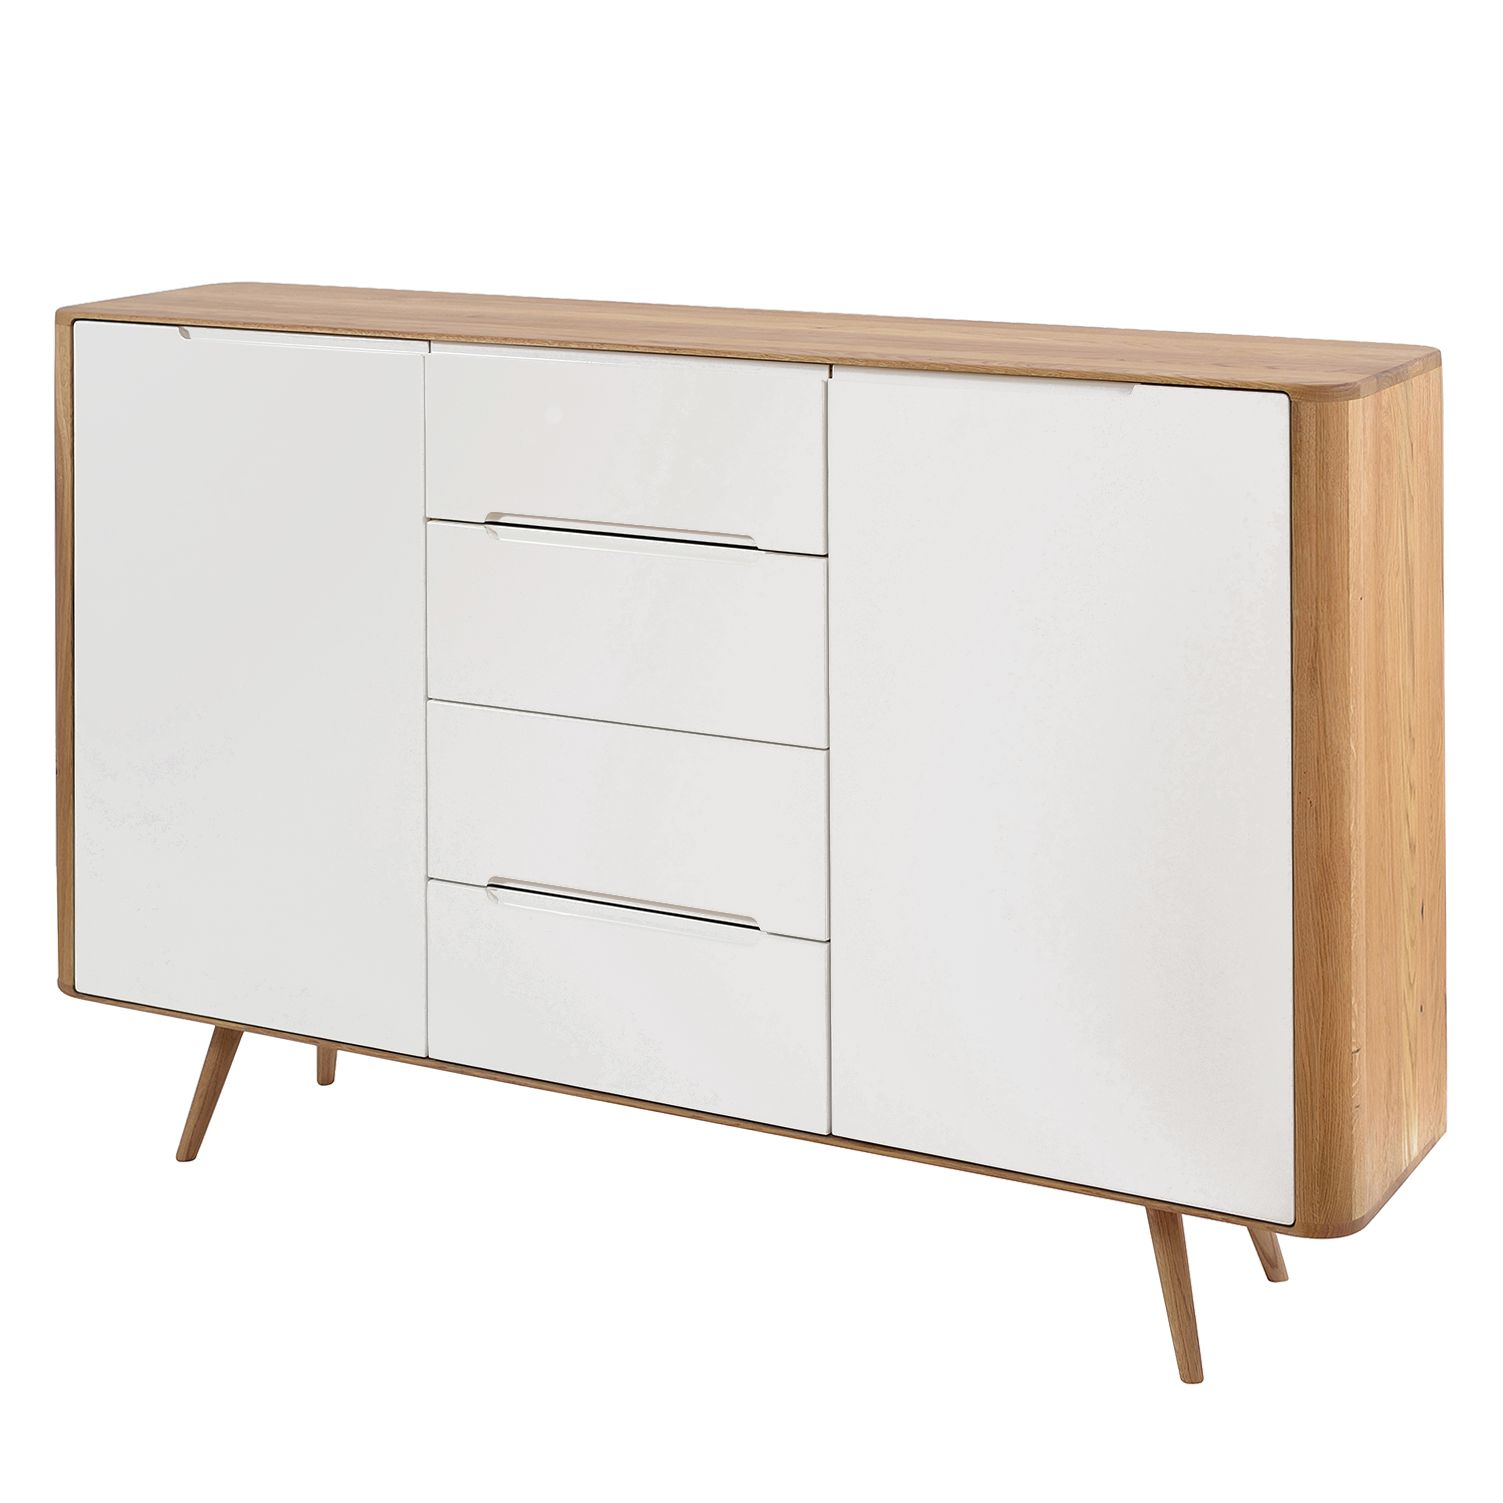 sideboard loca ii eiche teilmassiv wei wildeiche 180 cm jetzt kaufen. Black Bedroom Furniture Sets. Home Design Ideas